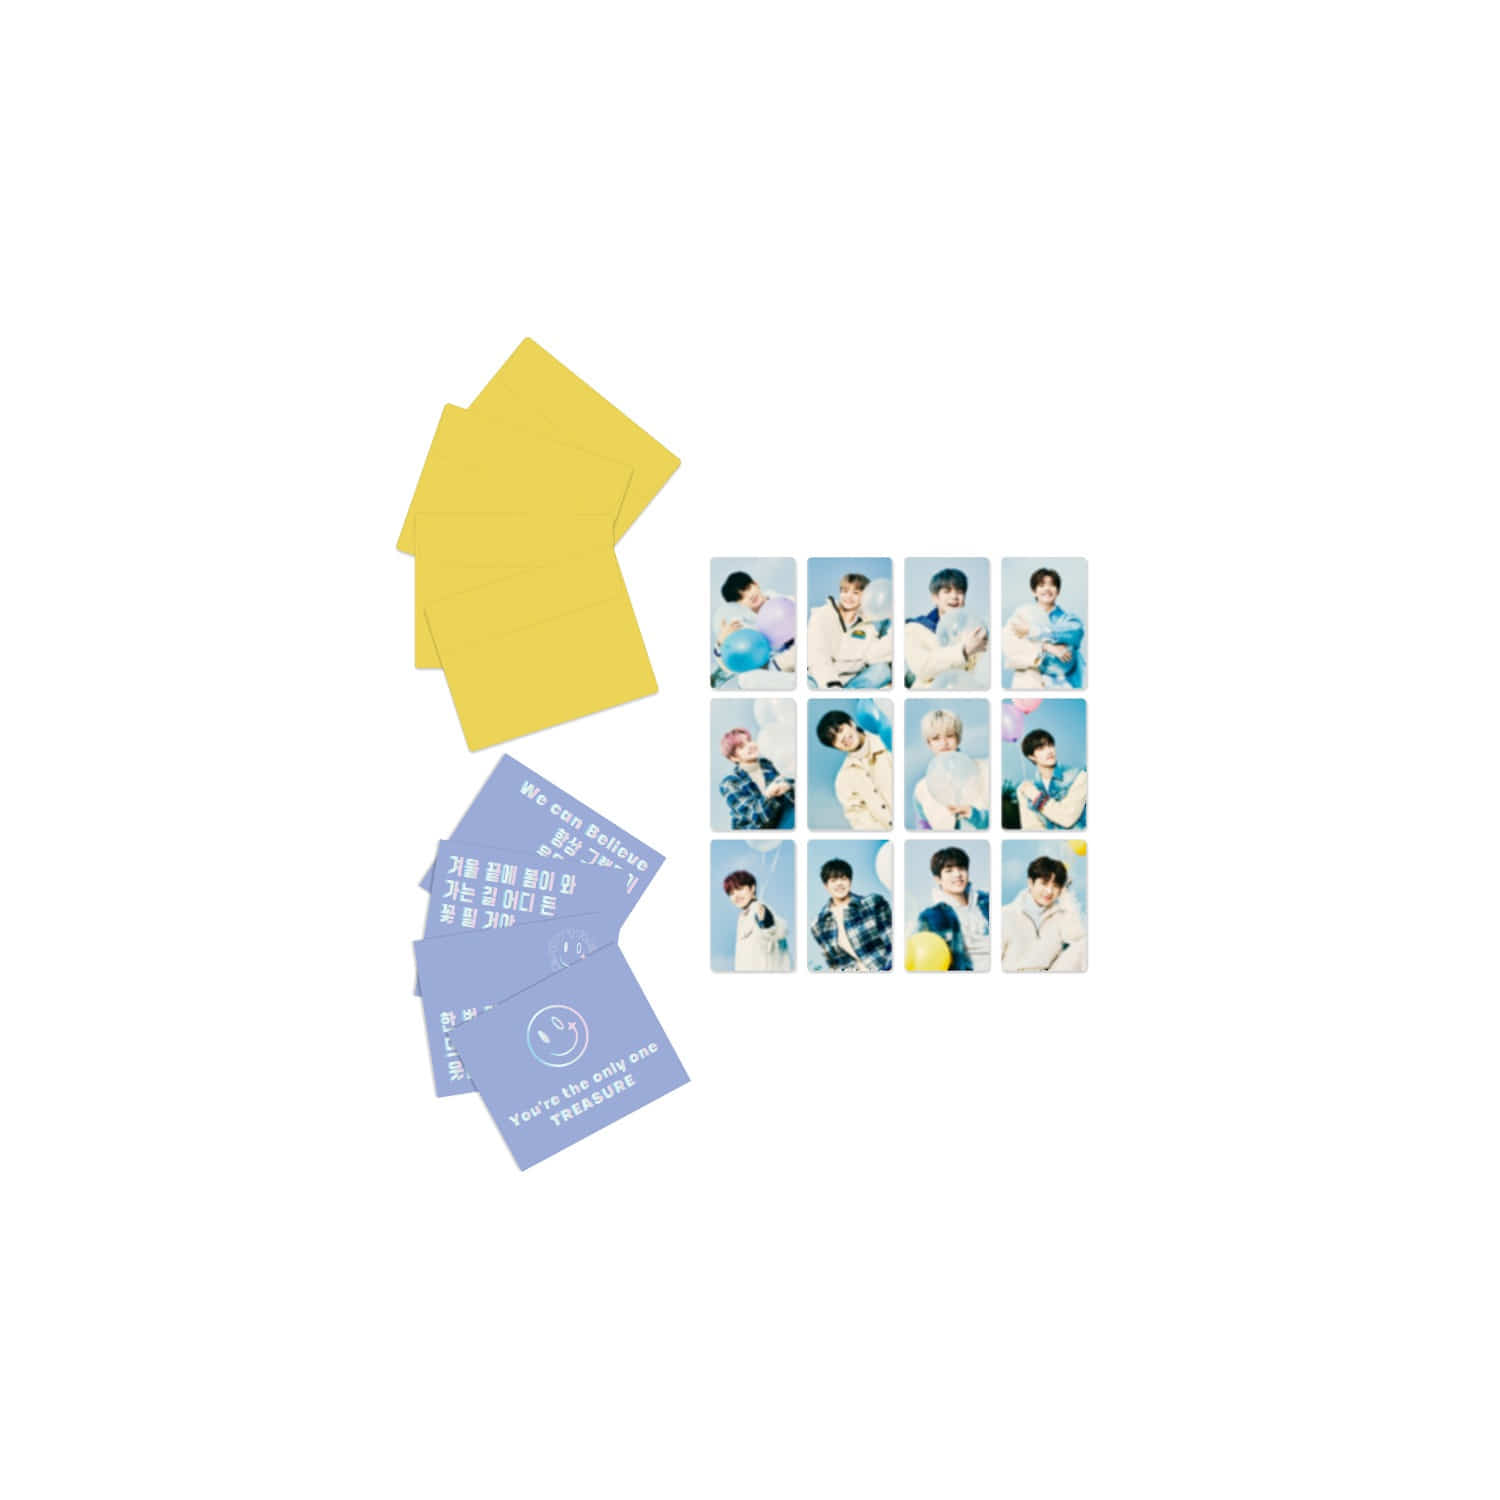 [MYTREASURE] TREASURE LYRICS CARDS + PHOTOCARDS SET